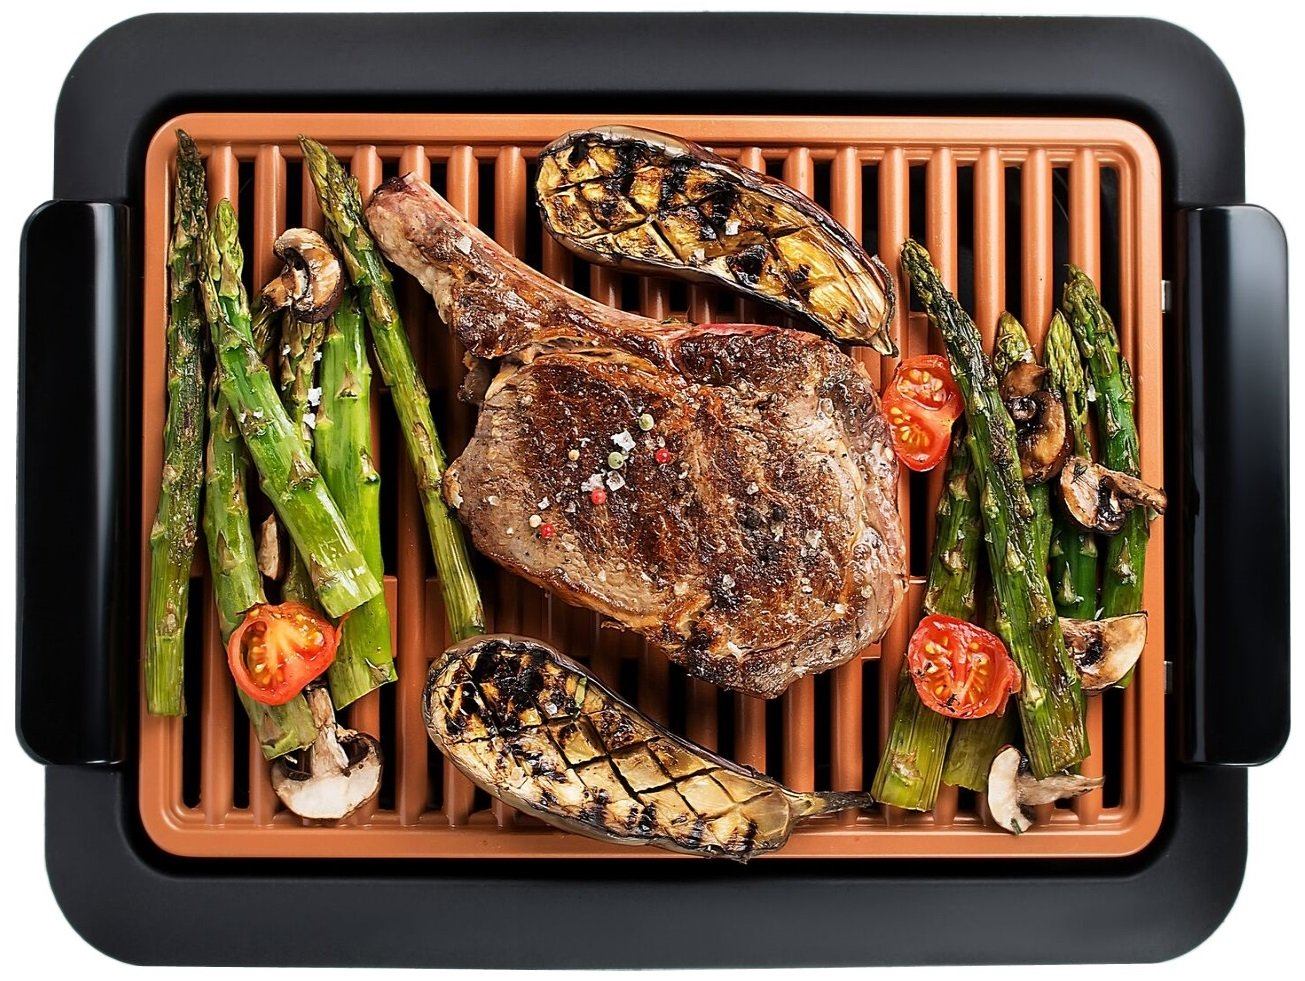 GOTHAM STEEL Smokeless Electric Grill, Portable and Nonstick As Seen On TV (Original) by GOTHAM STEEL